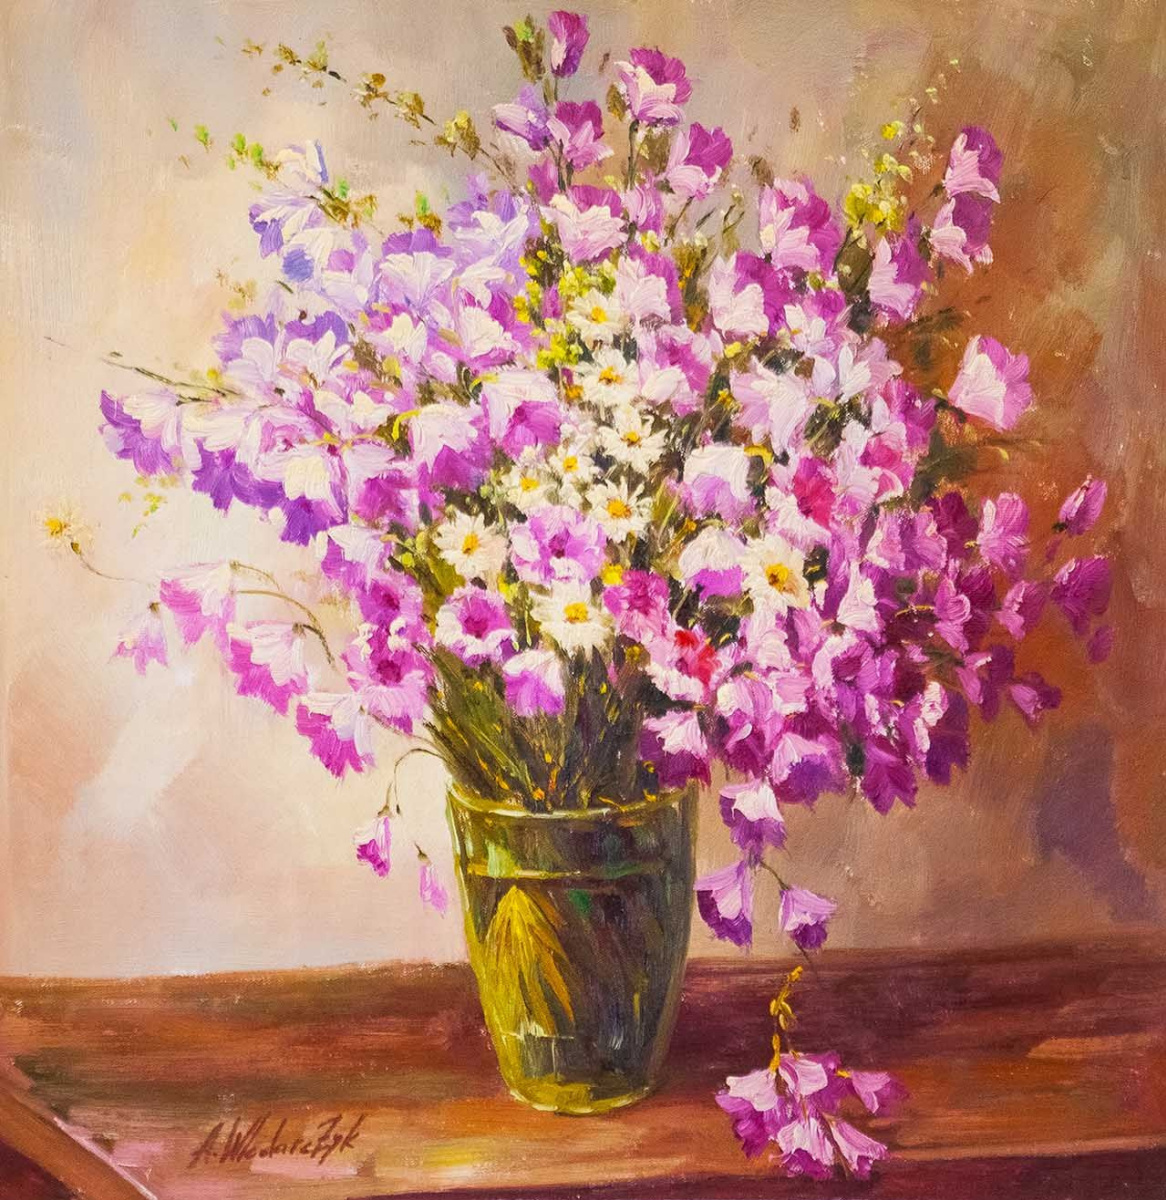 Andrzej Vlodarczyk. Bouquet. Bells and daisies